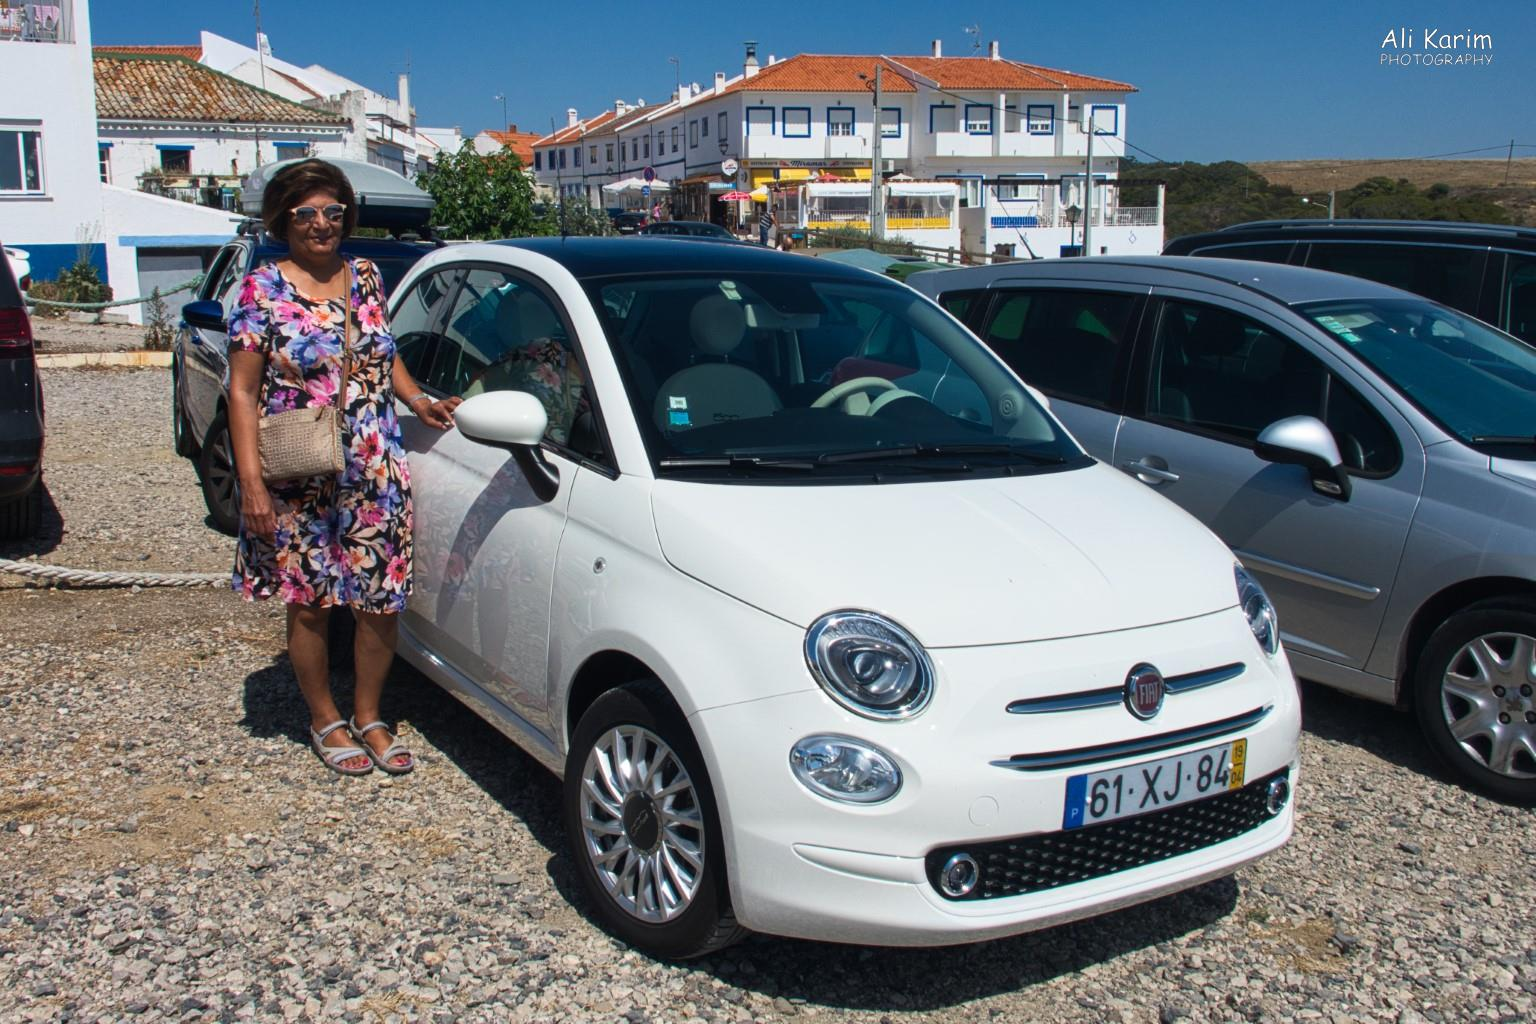 Algarve, Portugal Younger model Fiat 500